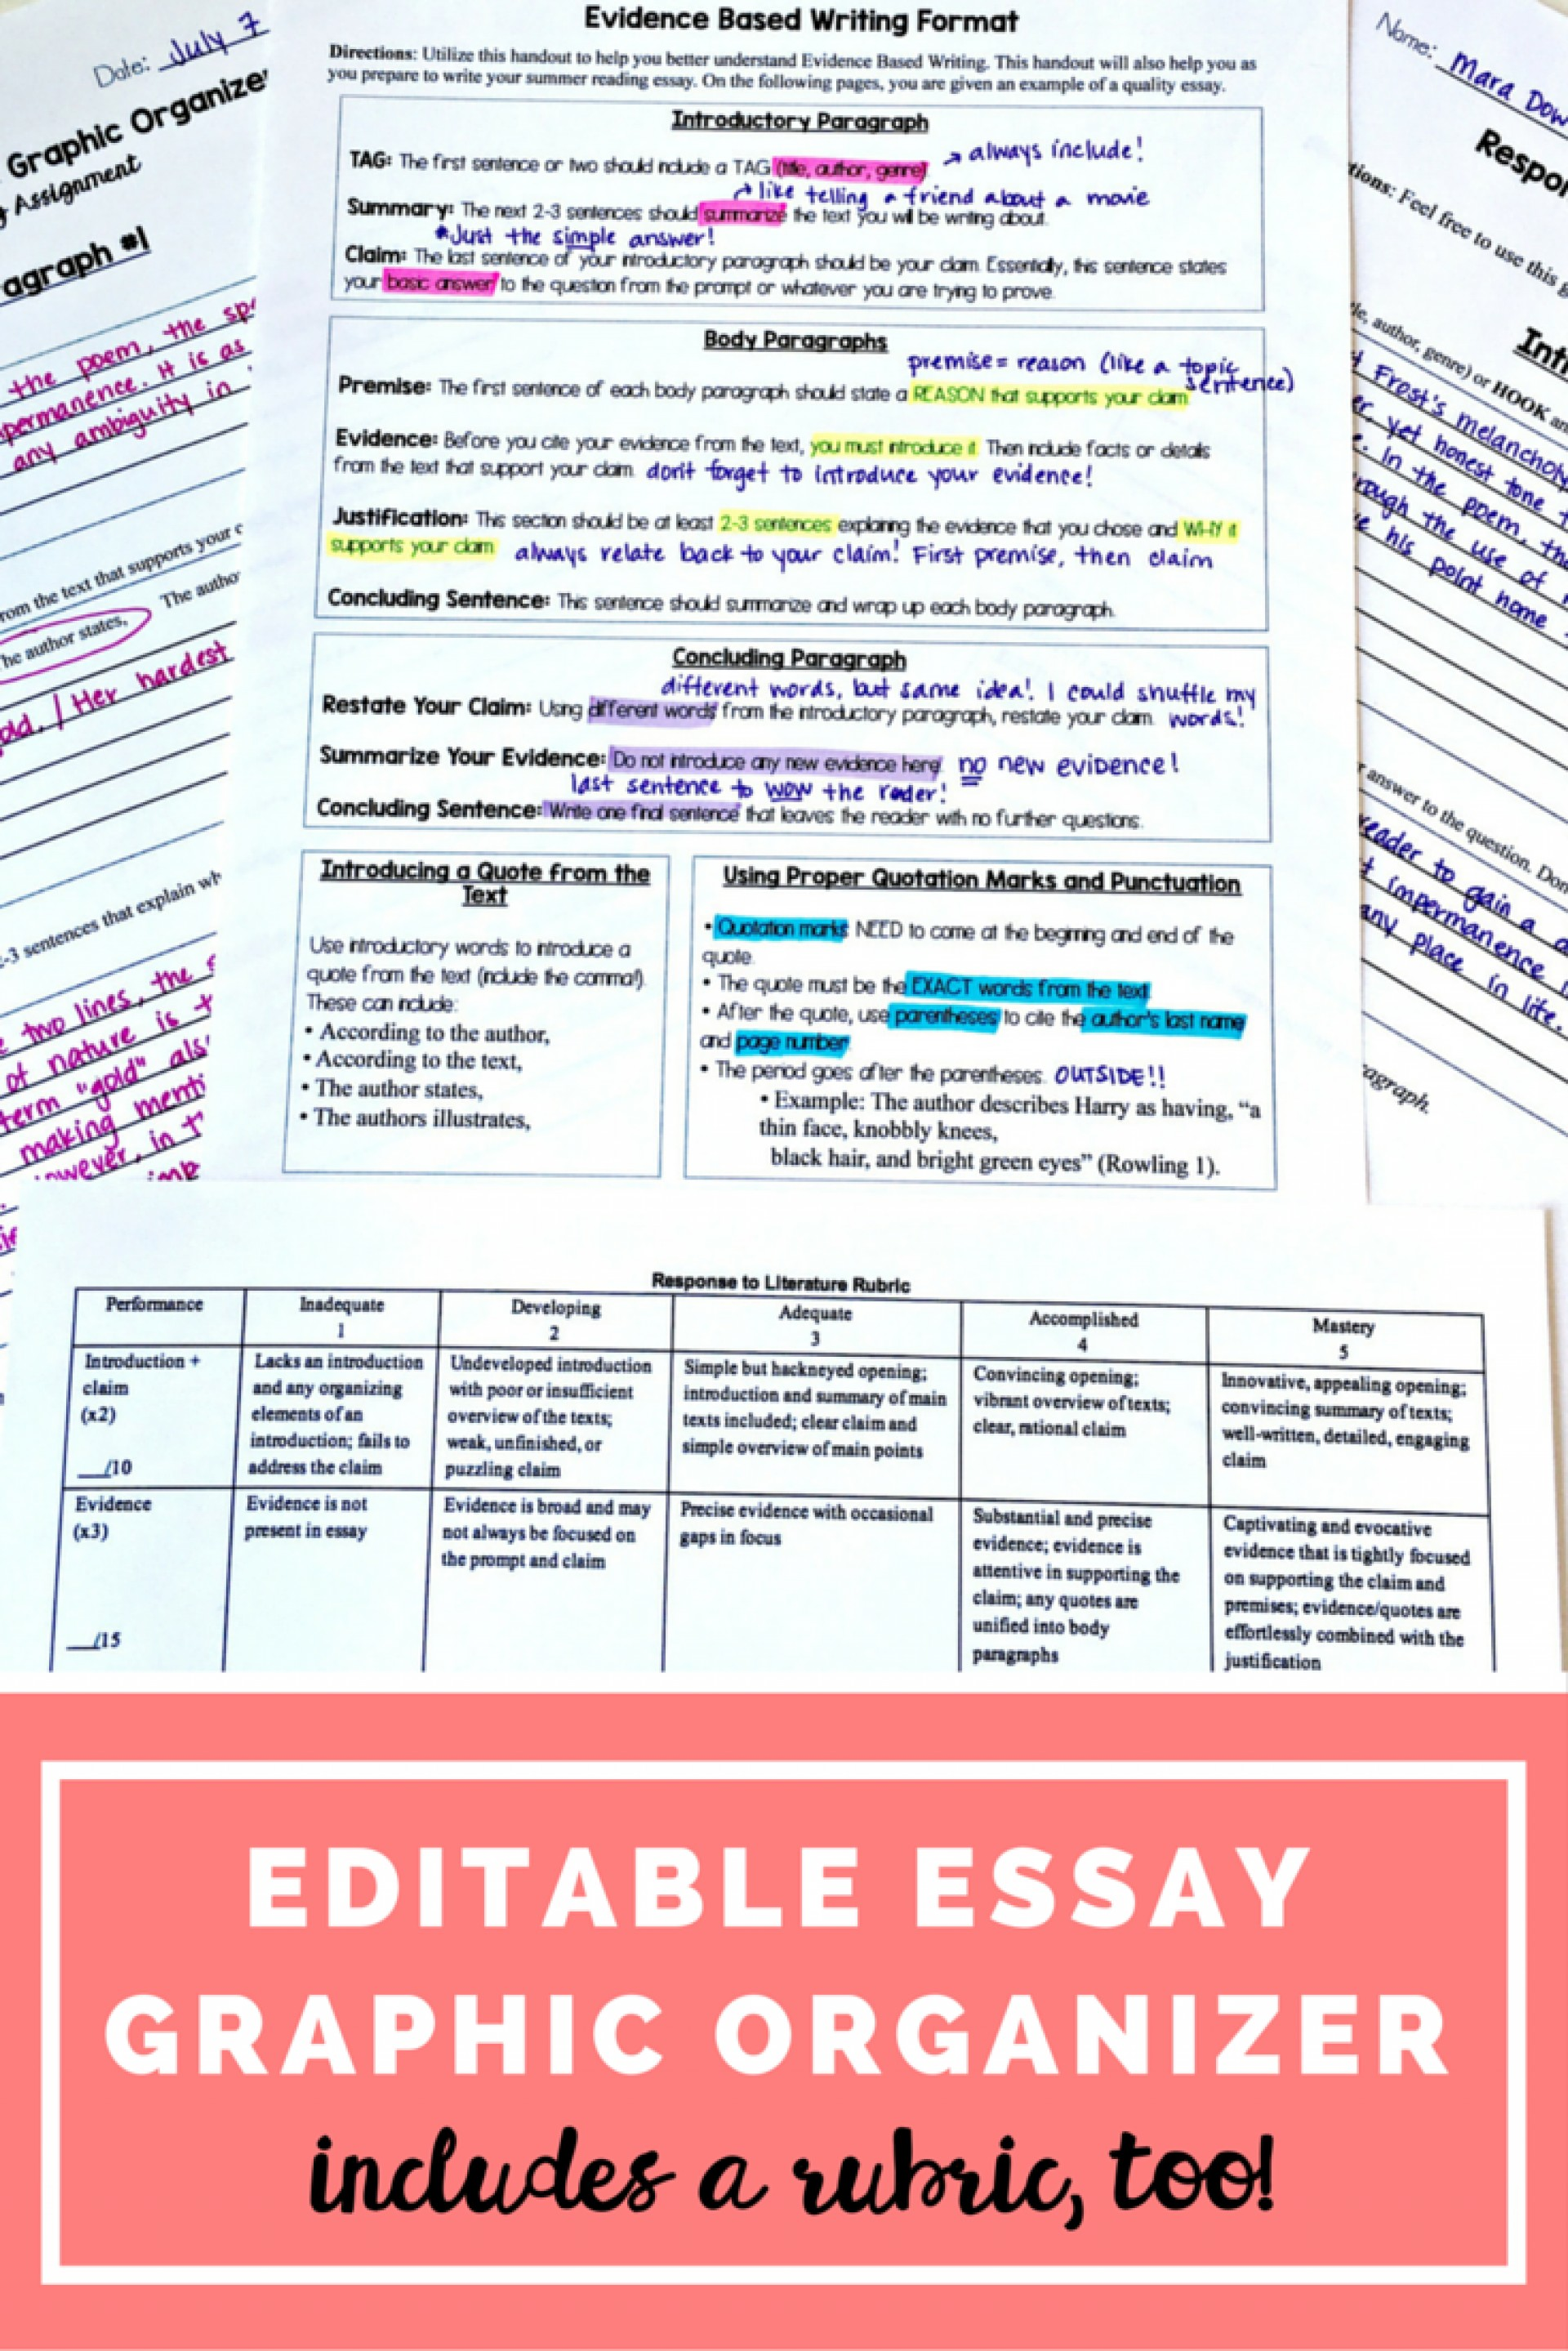 020 Argumentative Essay Graphic Organizer Incredible For Middle School Pdf 1920